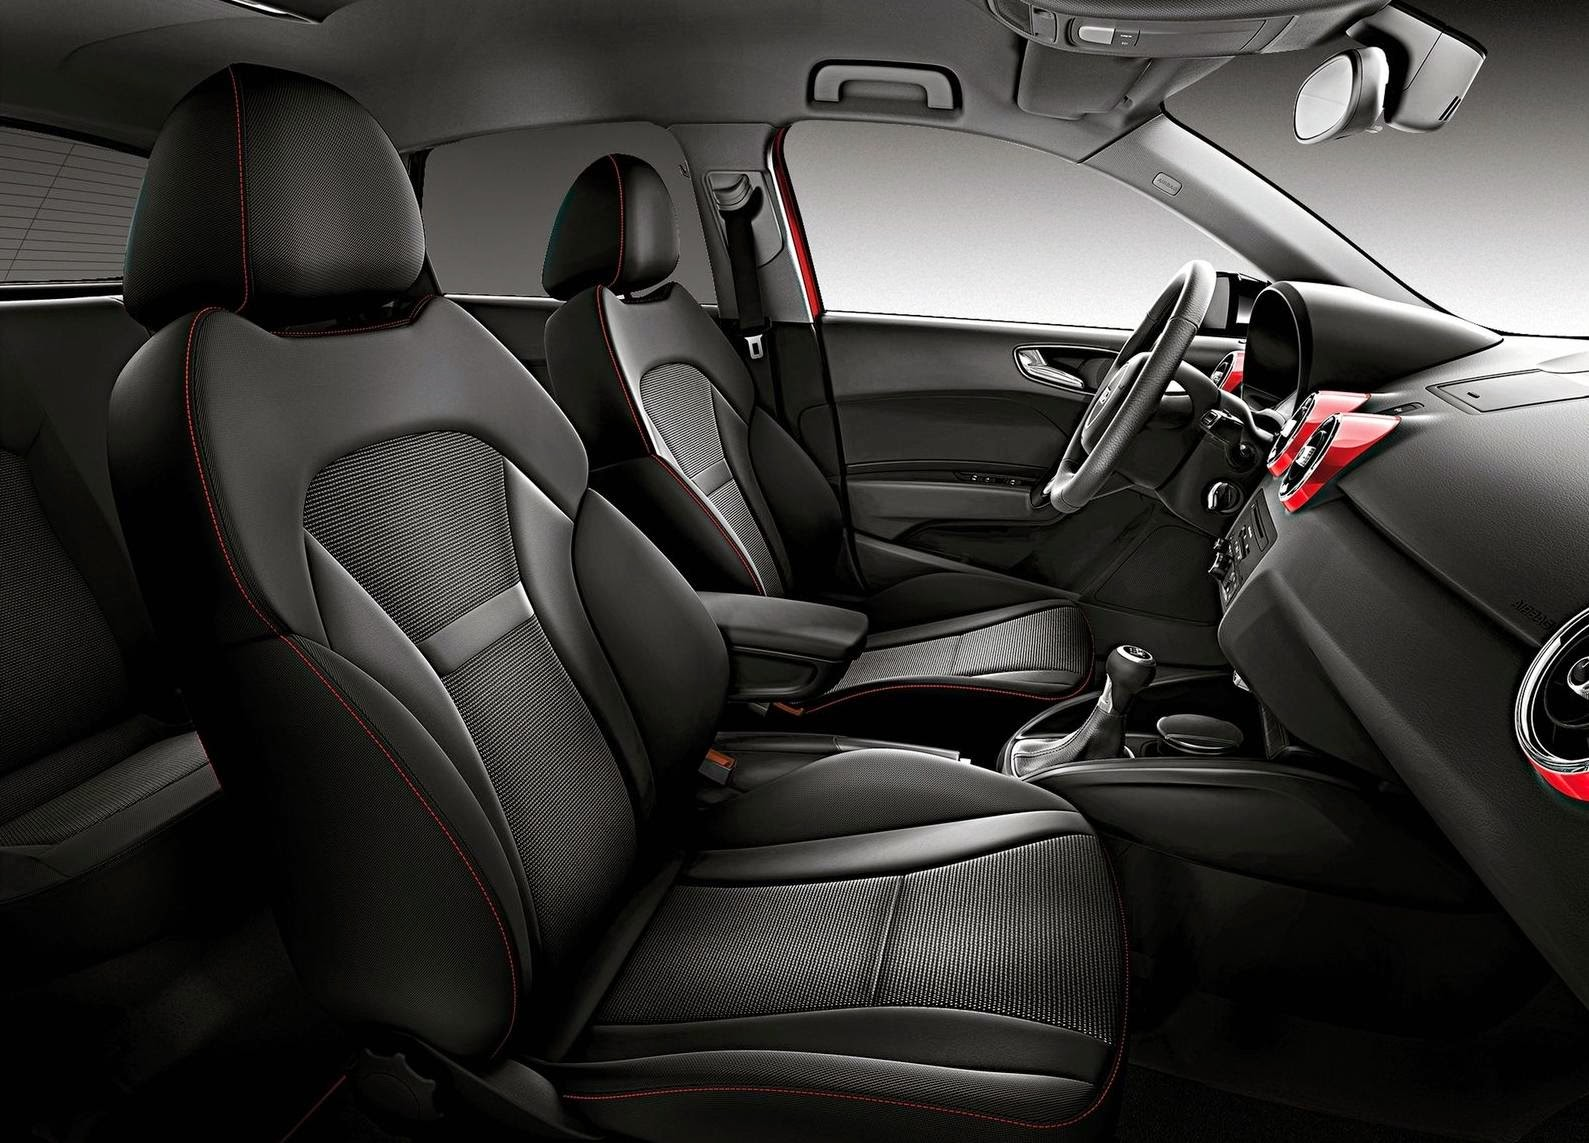 Audi A1 Amplified 2012 Full-screen 1080p Wallpaper